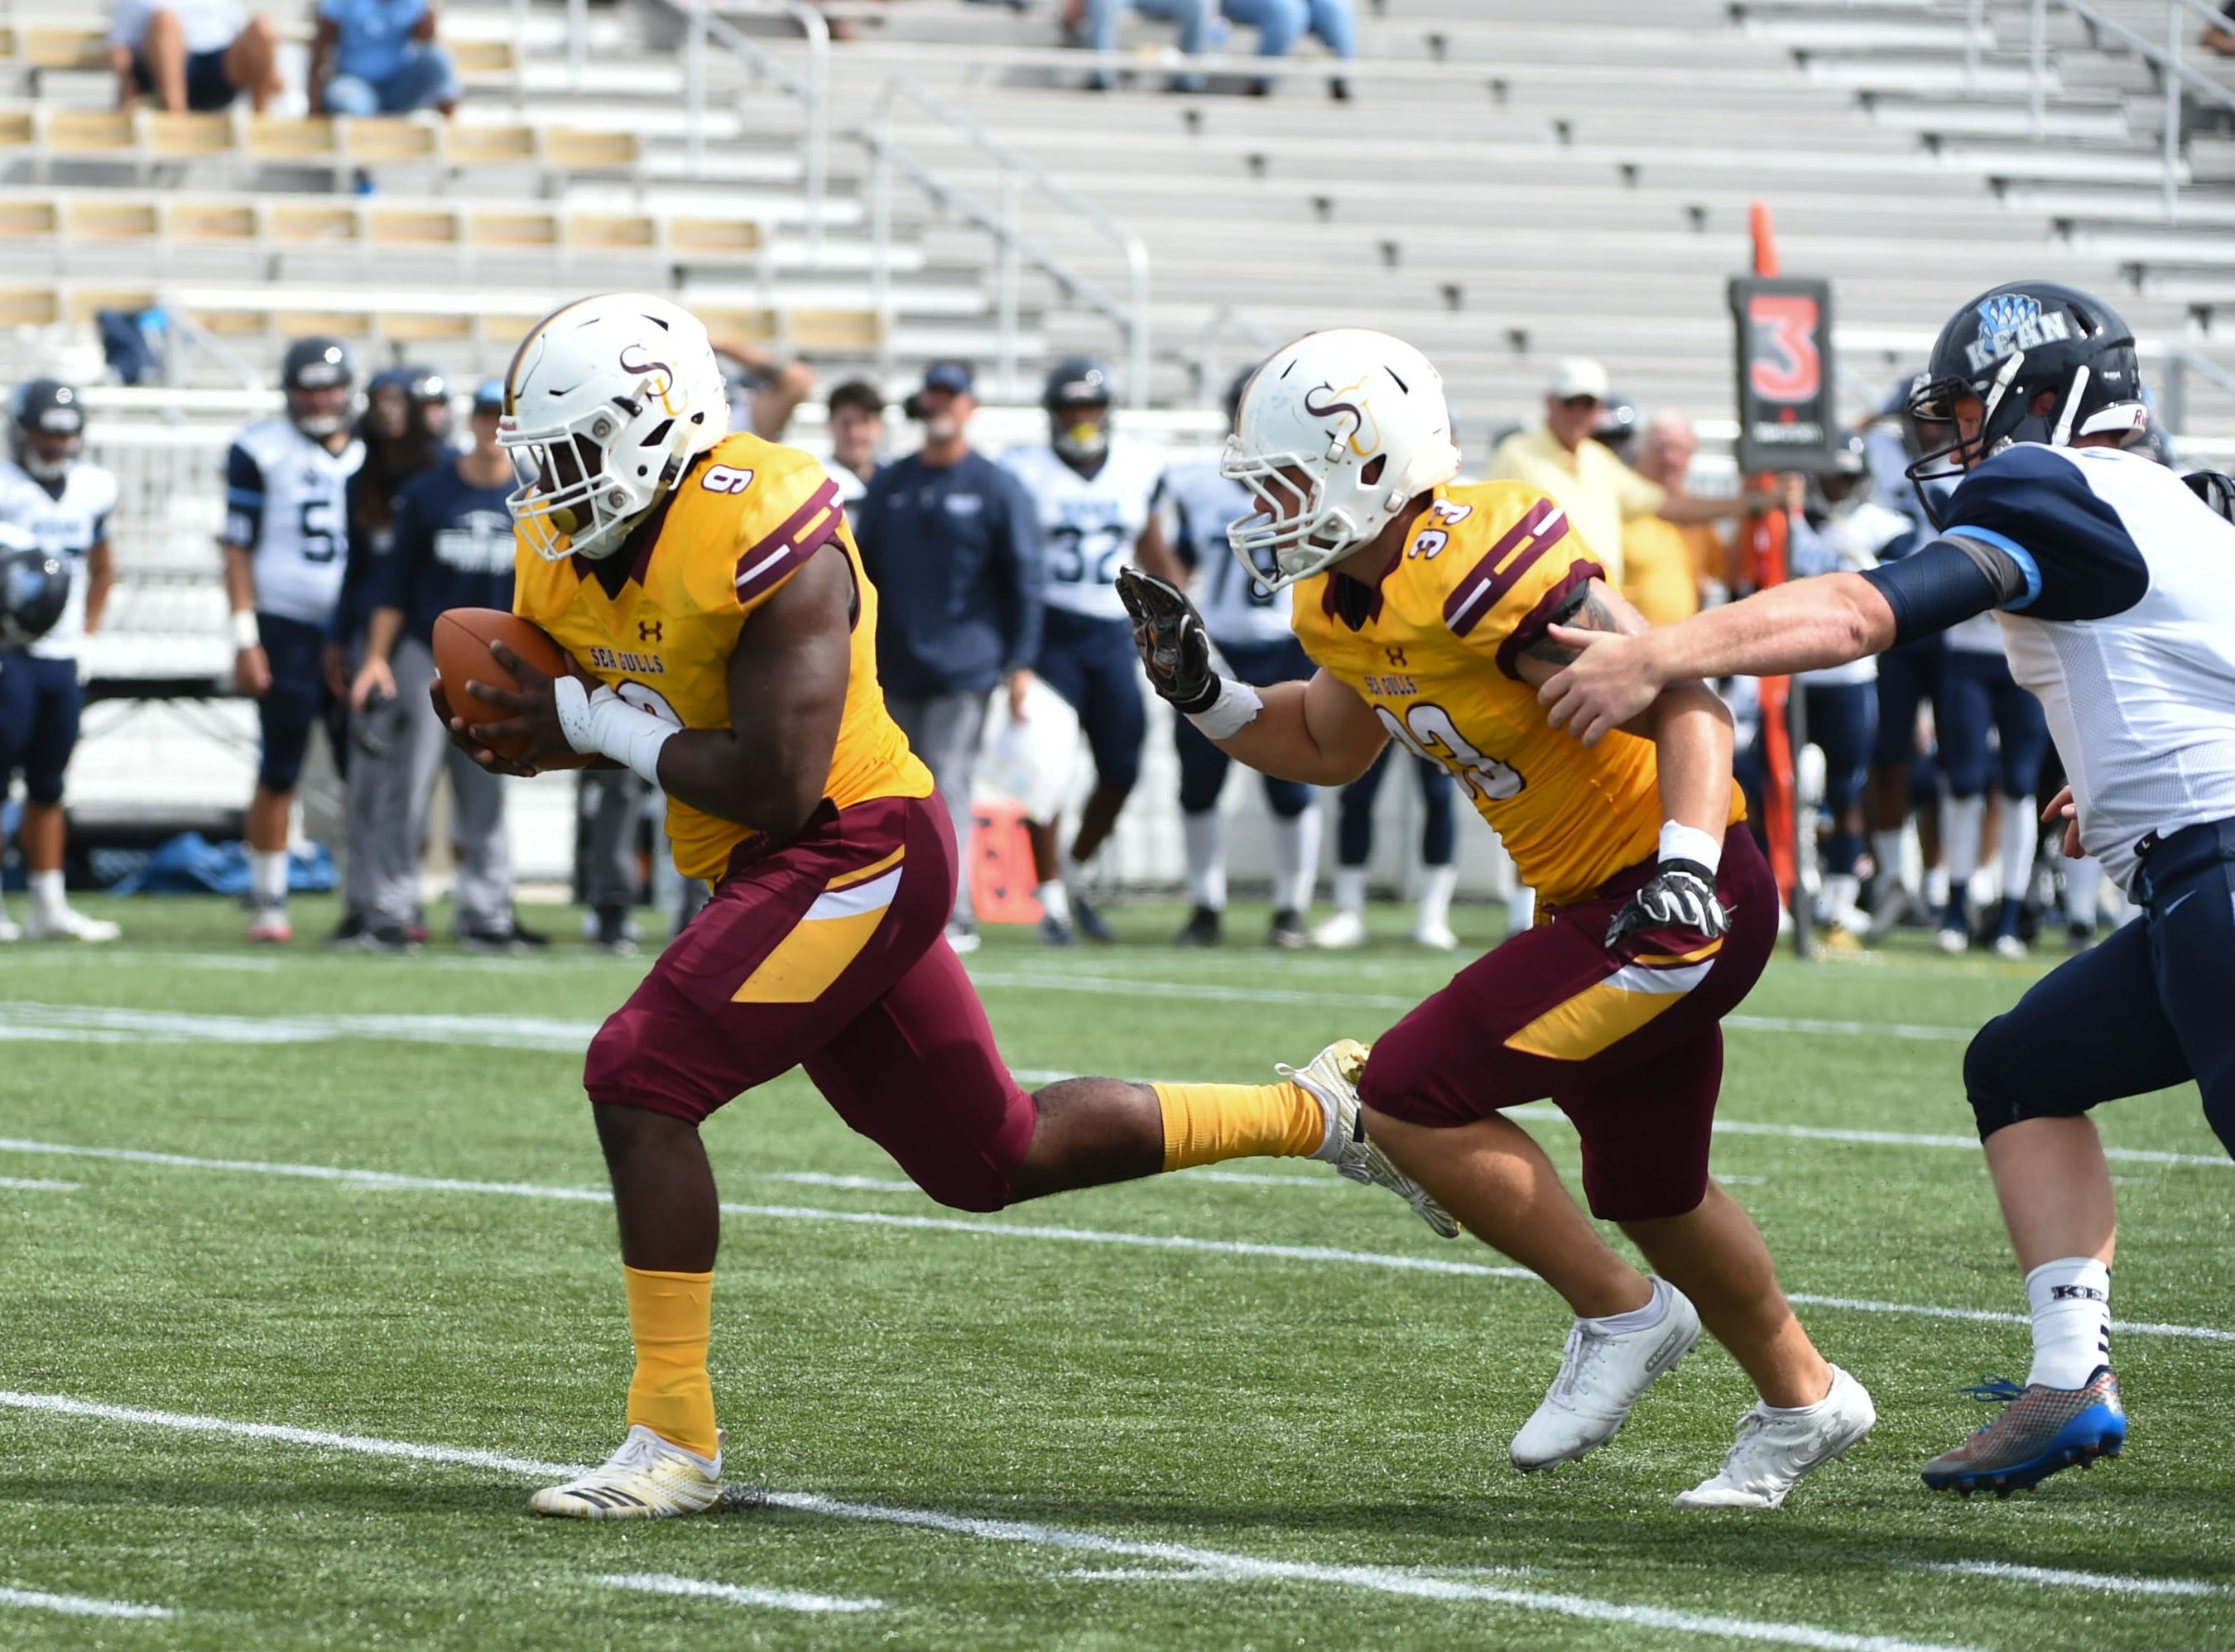 Salisbury's QB Matthew McFarland with the fumble recovery against Kean on Saturday, Sept. 15, 2018 at Seagull Stadium.